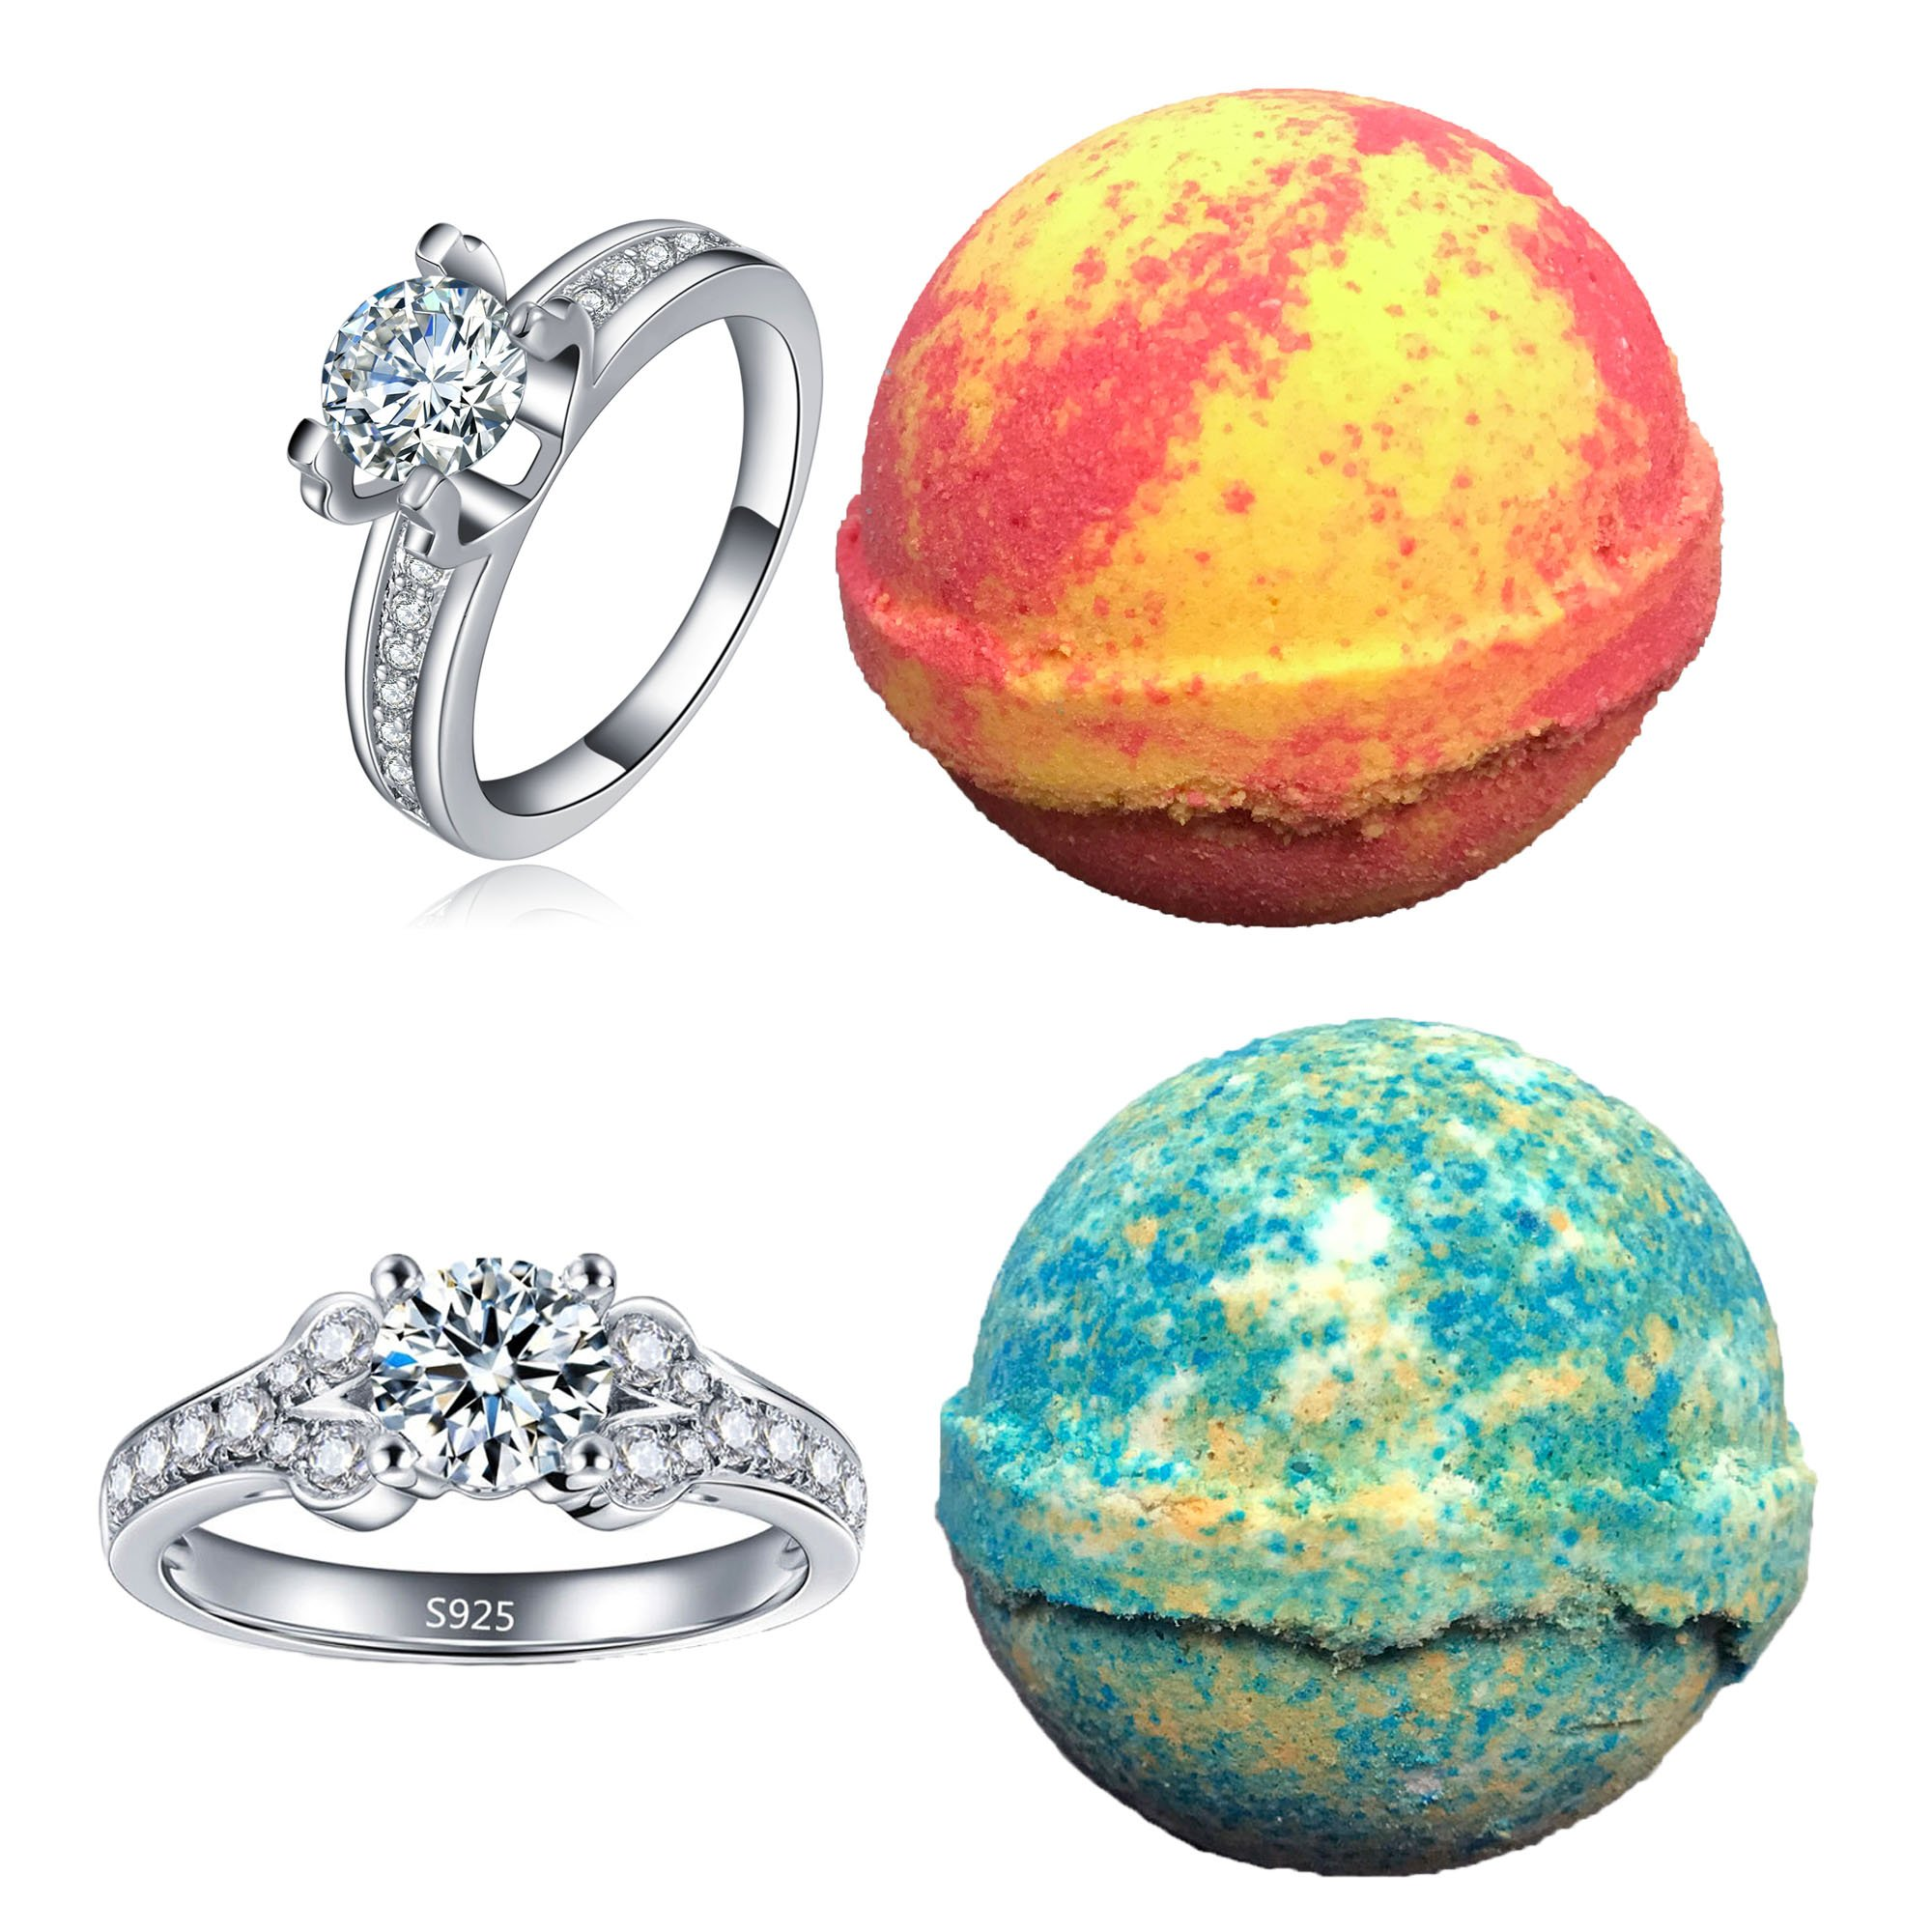 Amazon.com : Galaxy Ring X-Large Bath Bomb by Soapie Shoppe, Ring ...